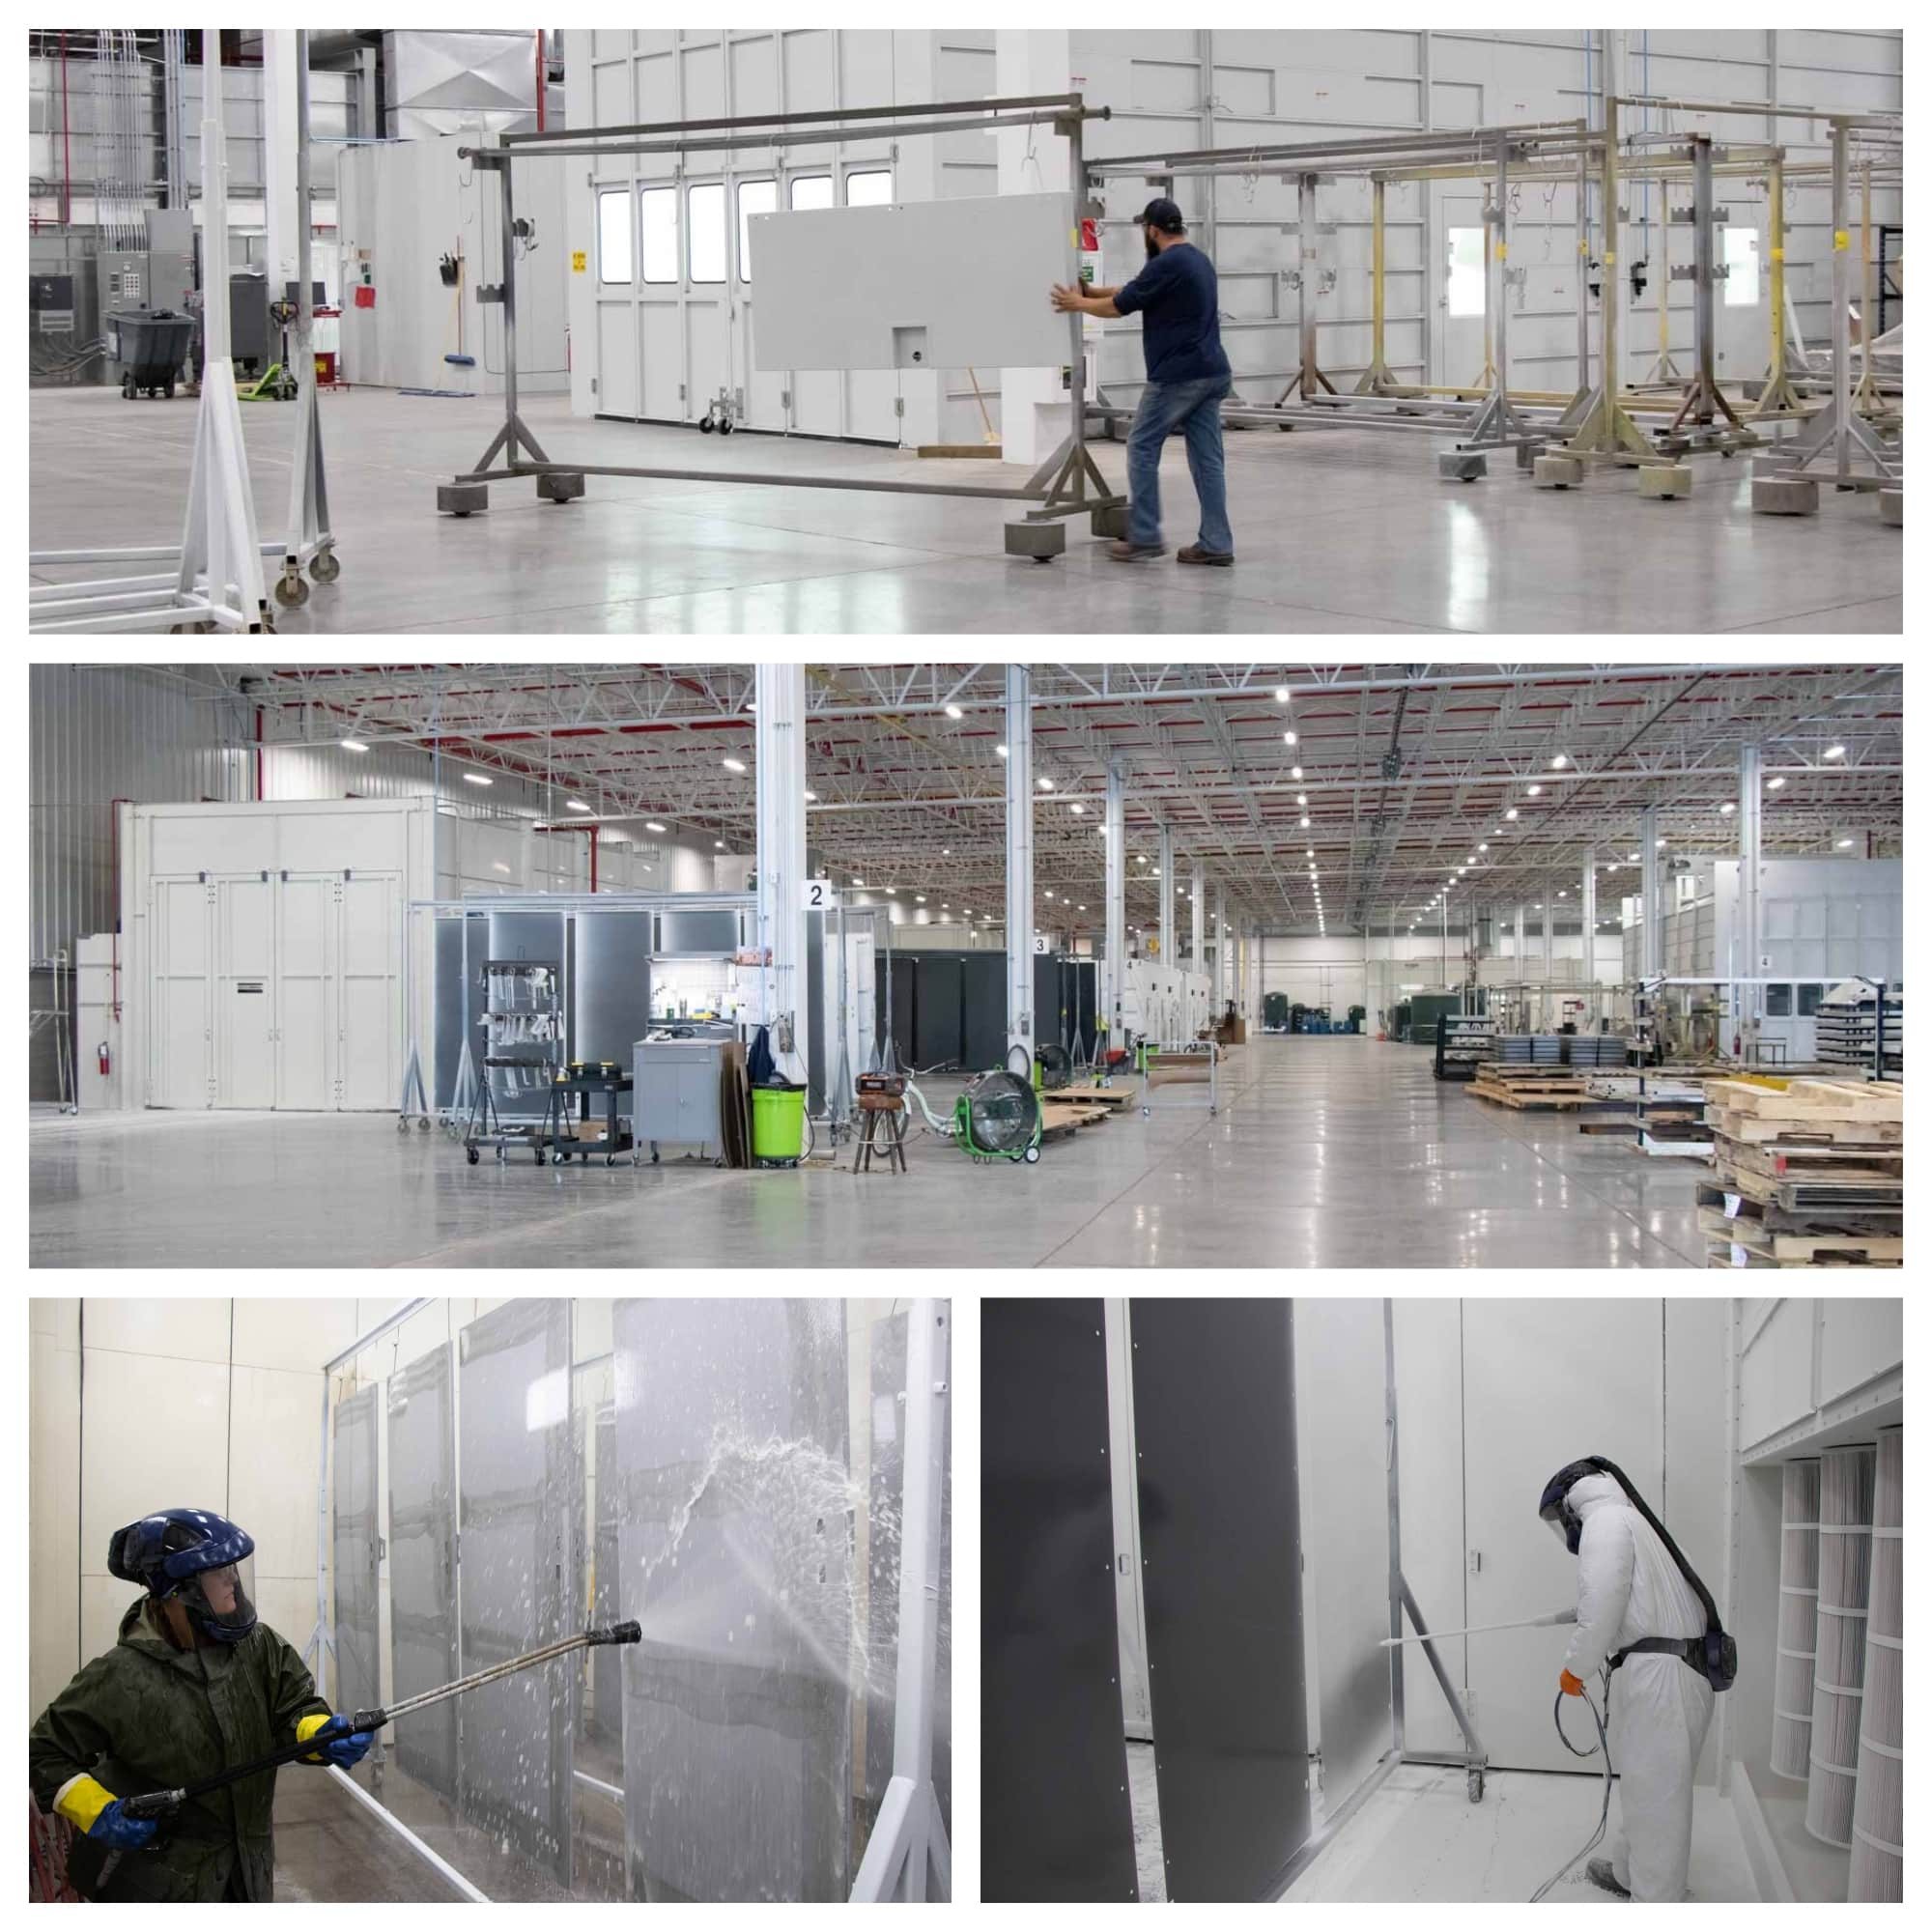 Robinson expands its wet paint and powder coating capabilities